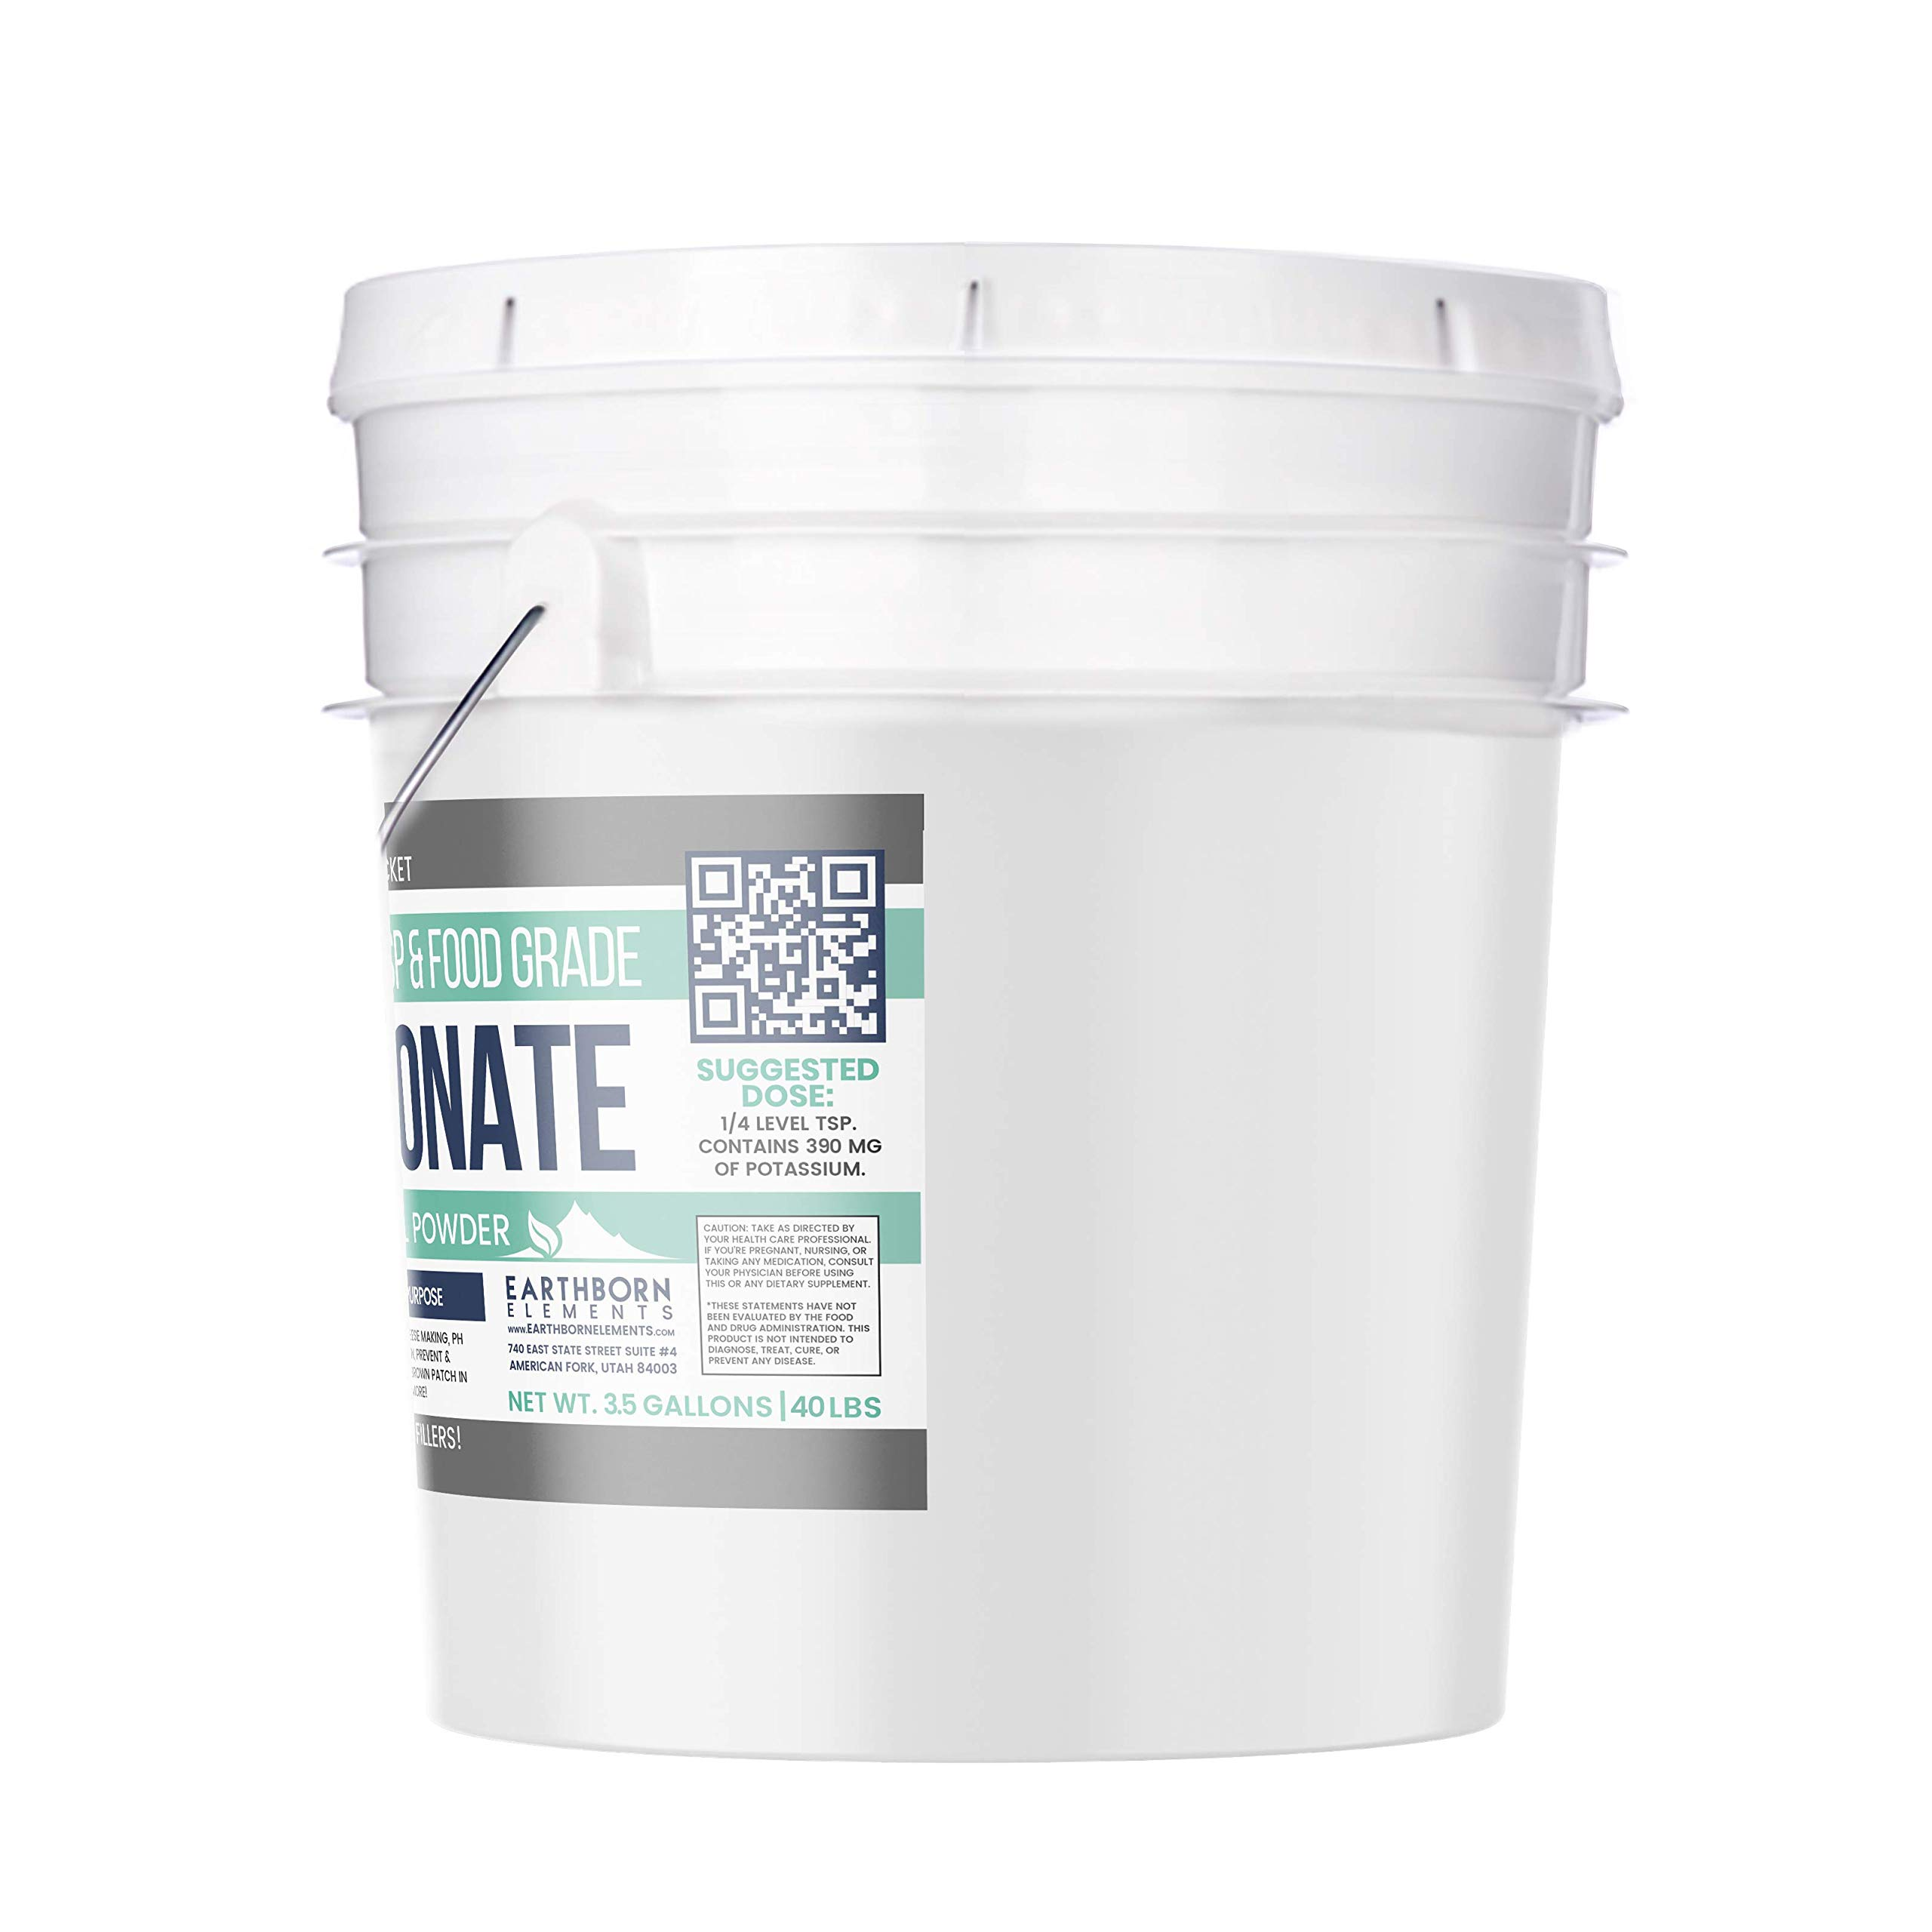 Potassium Bicarbonate (3.5 Gallon, 40 lbs.) by Earthborn Elements, Resealable Bucket, Highest Purity, Food and USP Pharmaceutical Grade by Earthborn Elements (Image #2)